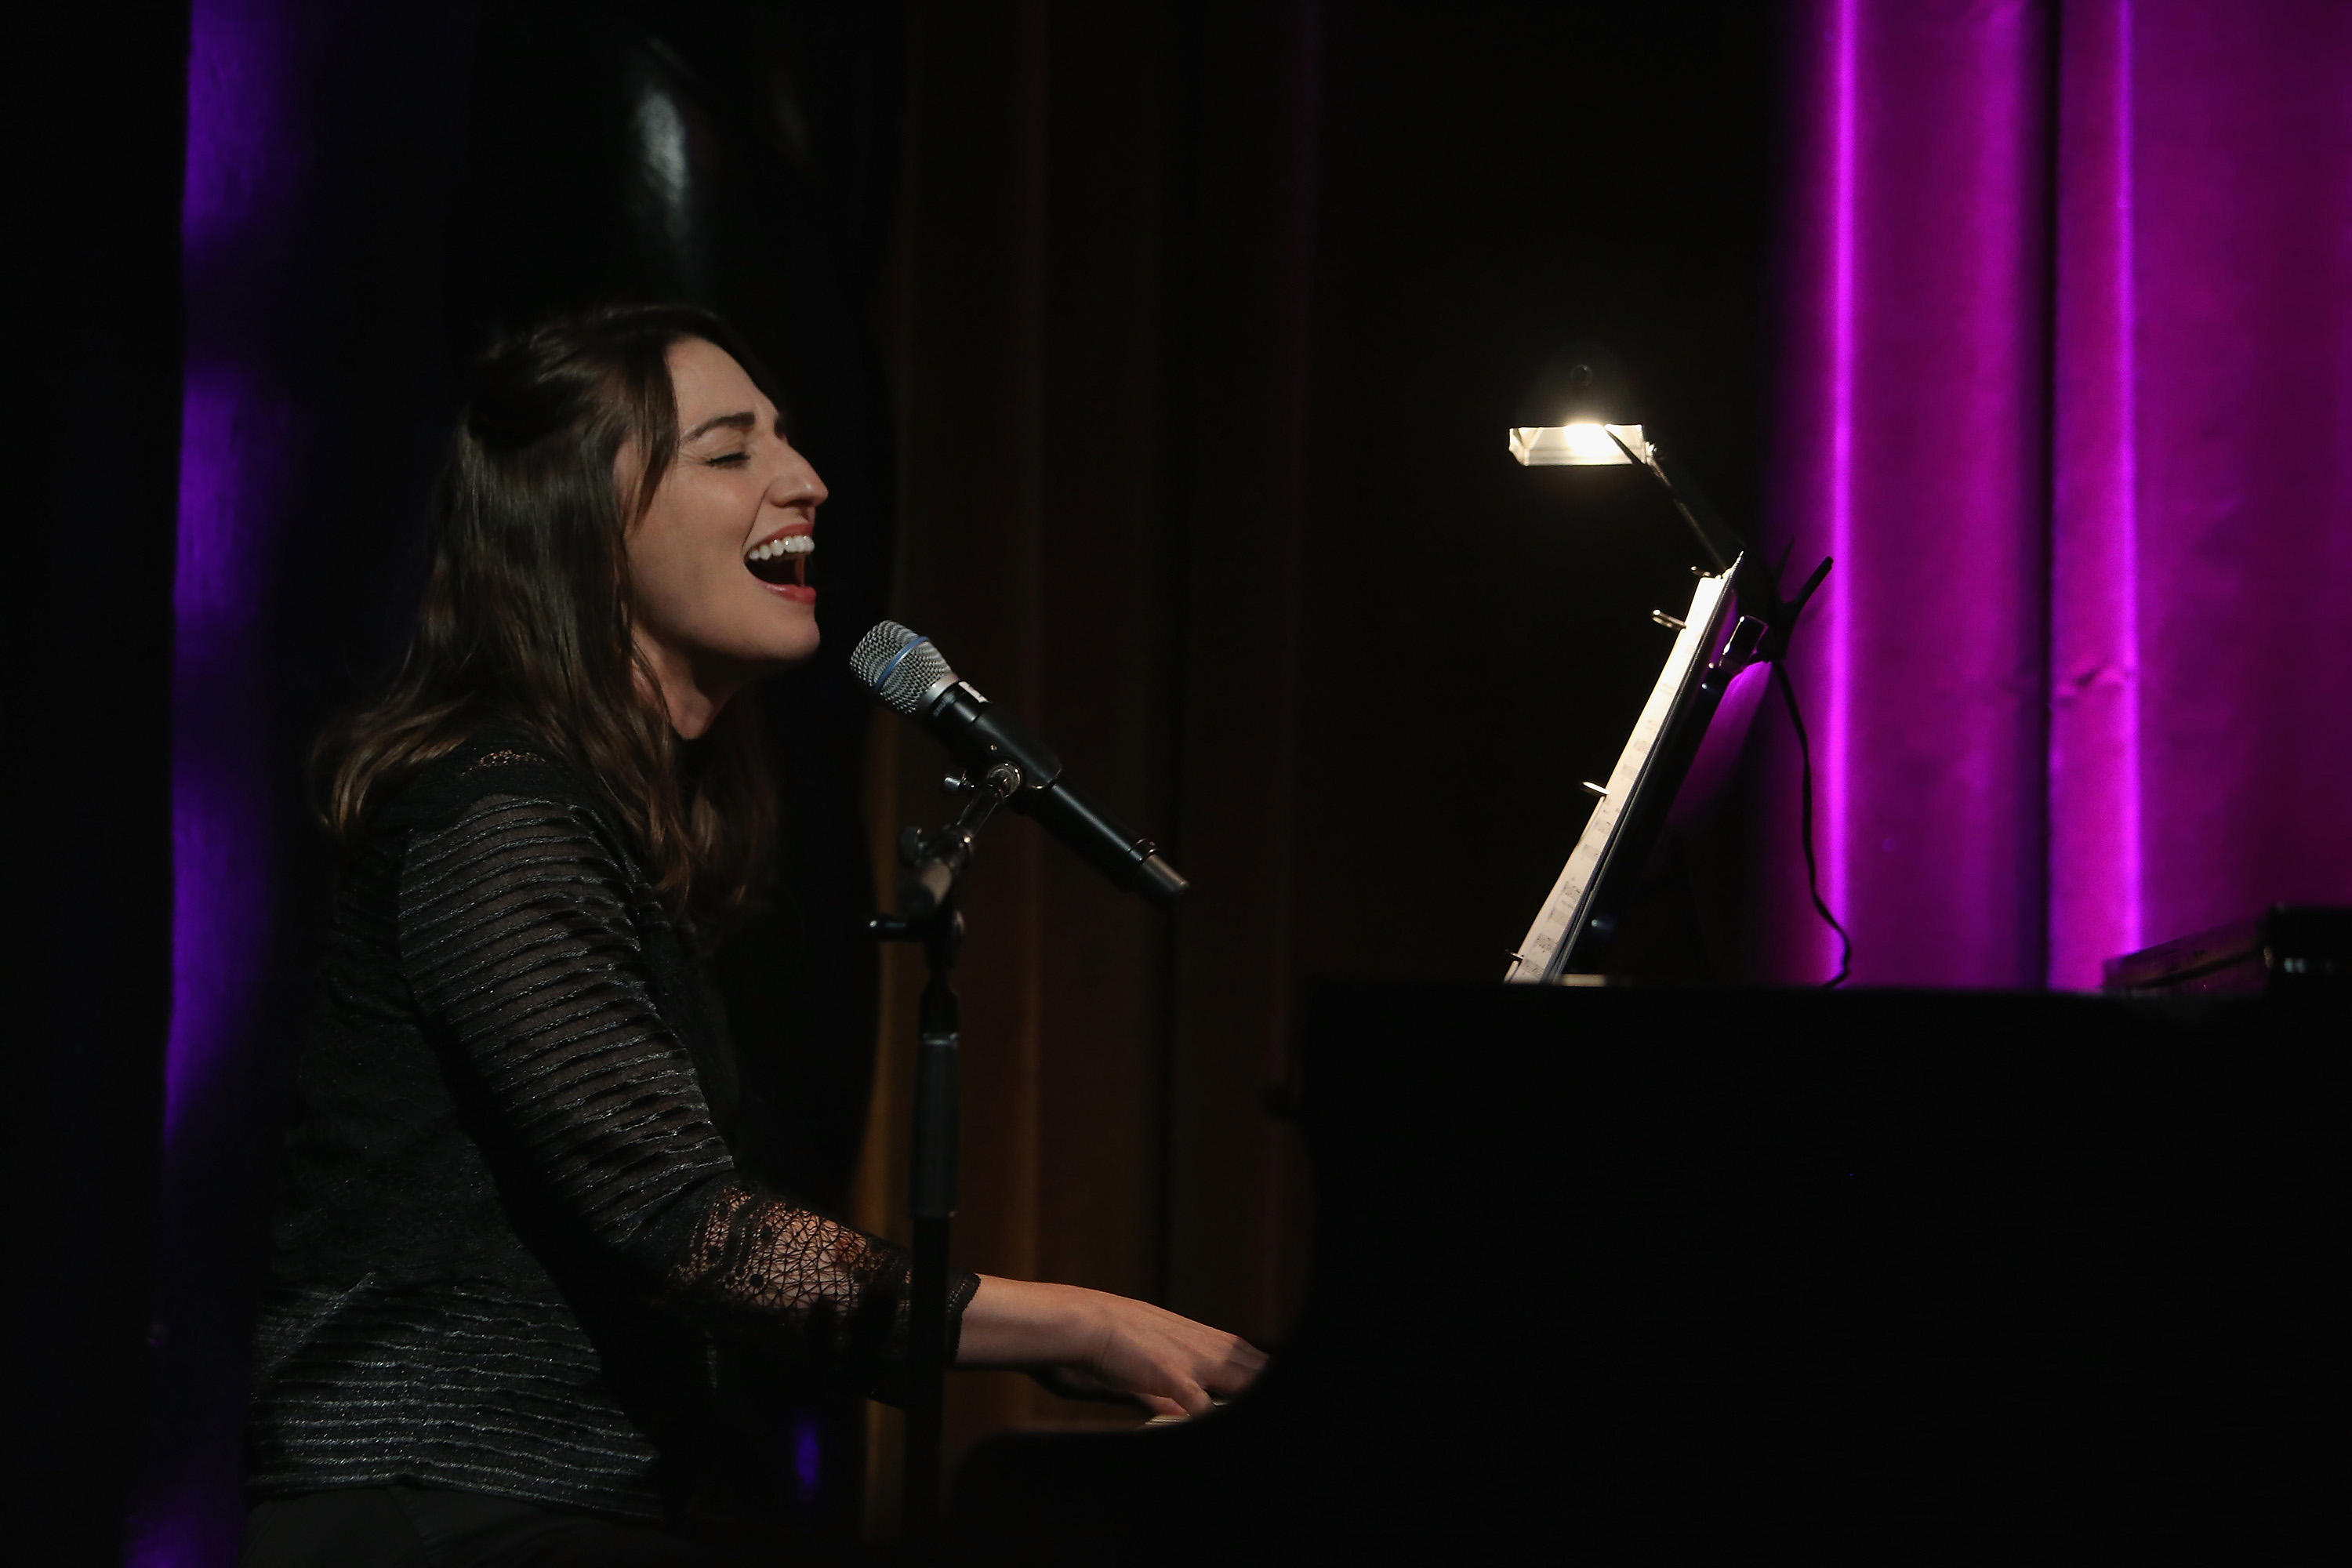 NEW YORK, NY - OCTOBER 15:  Sara Bareilles performs when she attends the Brooklyn Children's Theatre Presents Brooklyn on Broadway Gala at The Edison Ballroom on October 15, 2018 in New York City.  (Photo by Al Pereira/Getty Images)